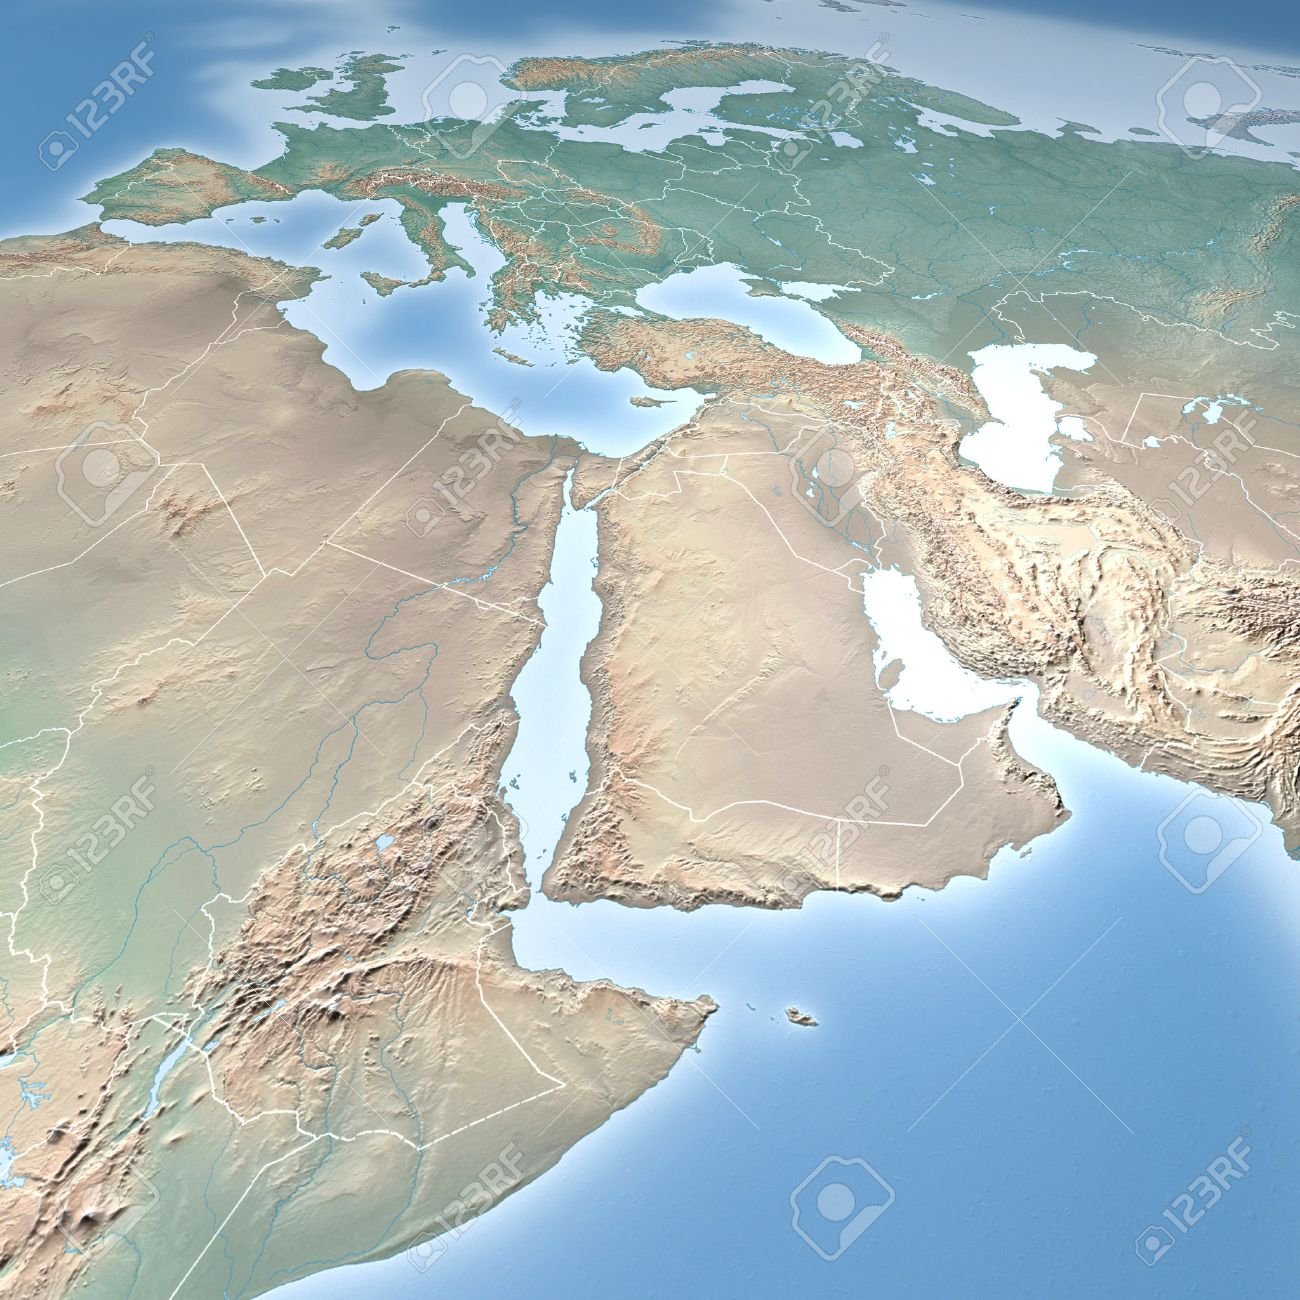 World map physical map middle east north africa and europe stock stock photo world map physical map middle east north africa and europe gumiabroncs Image collections